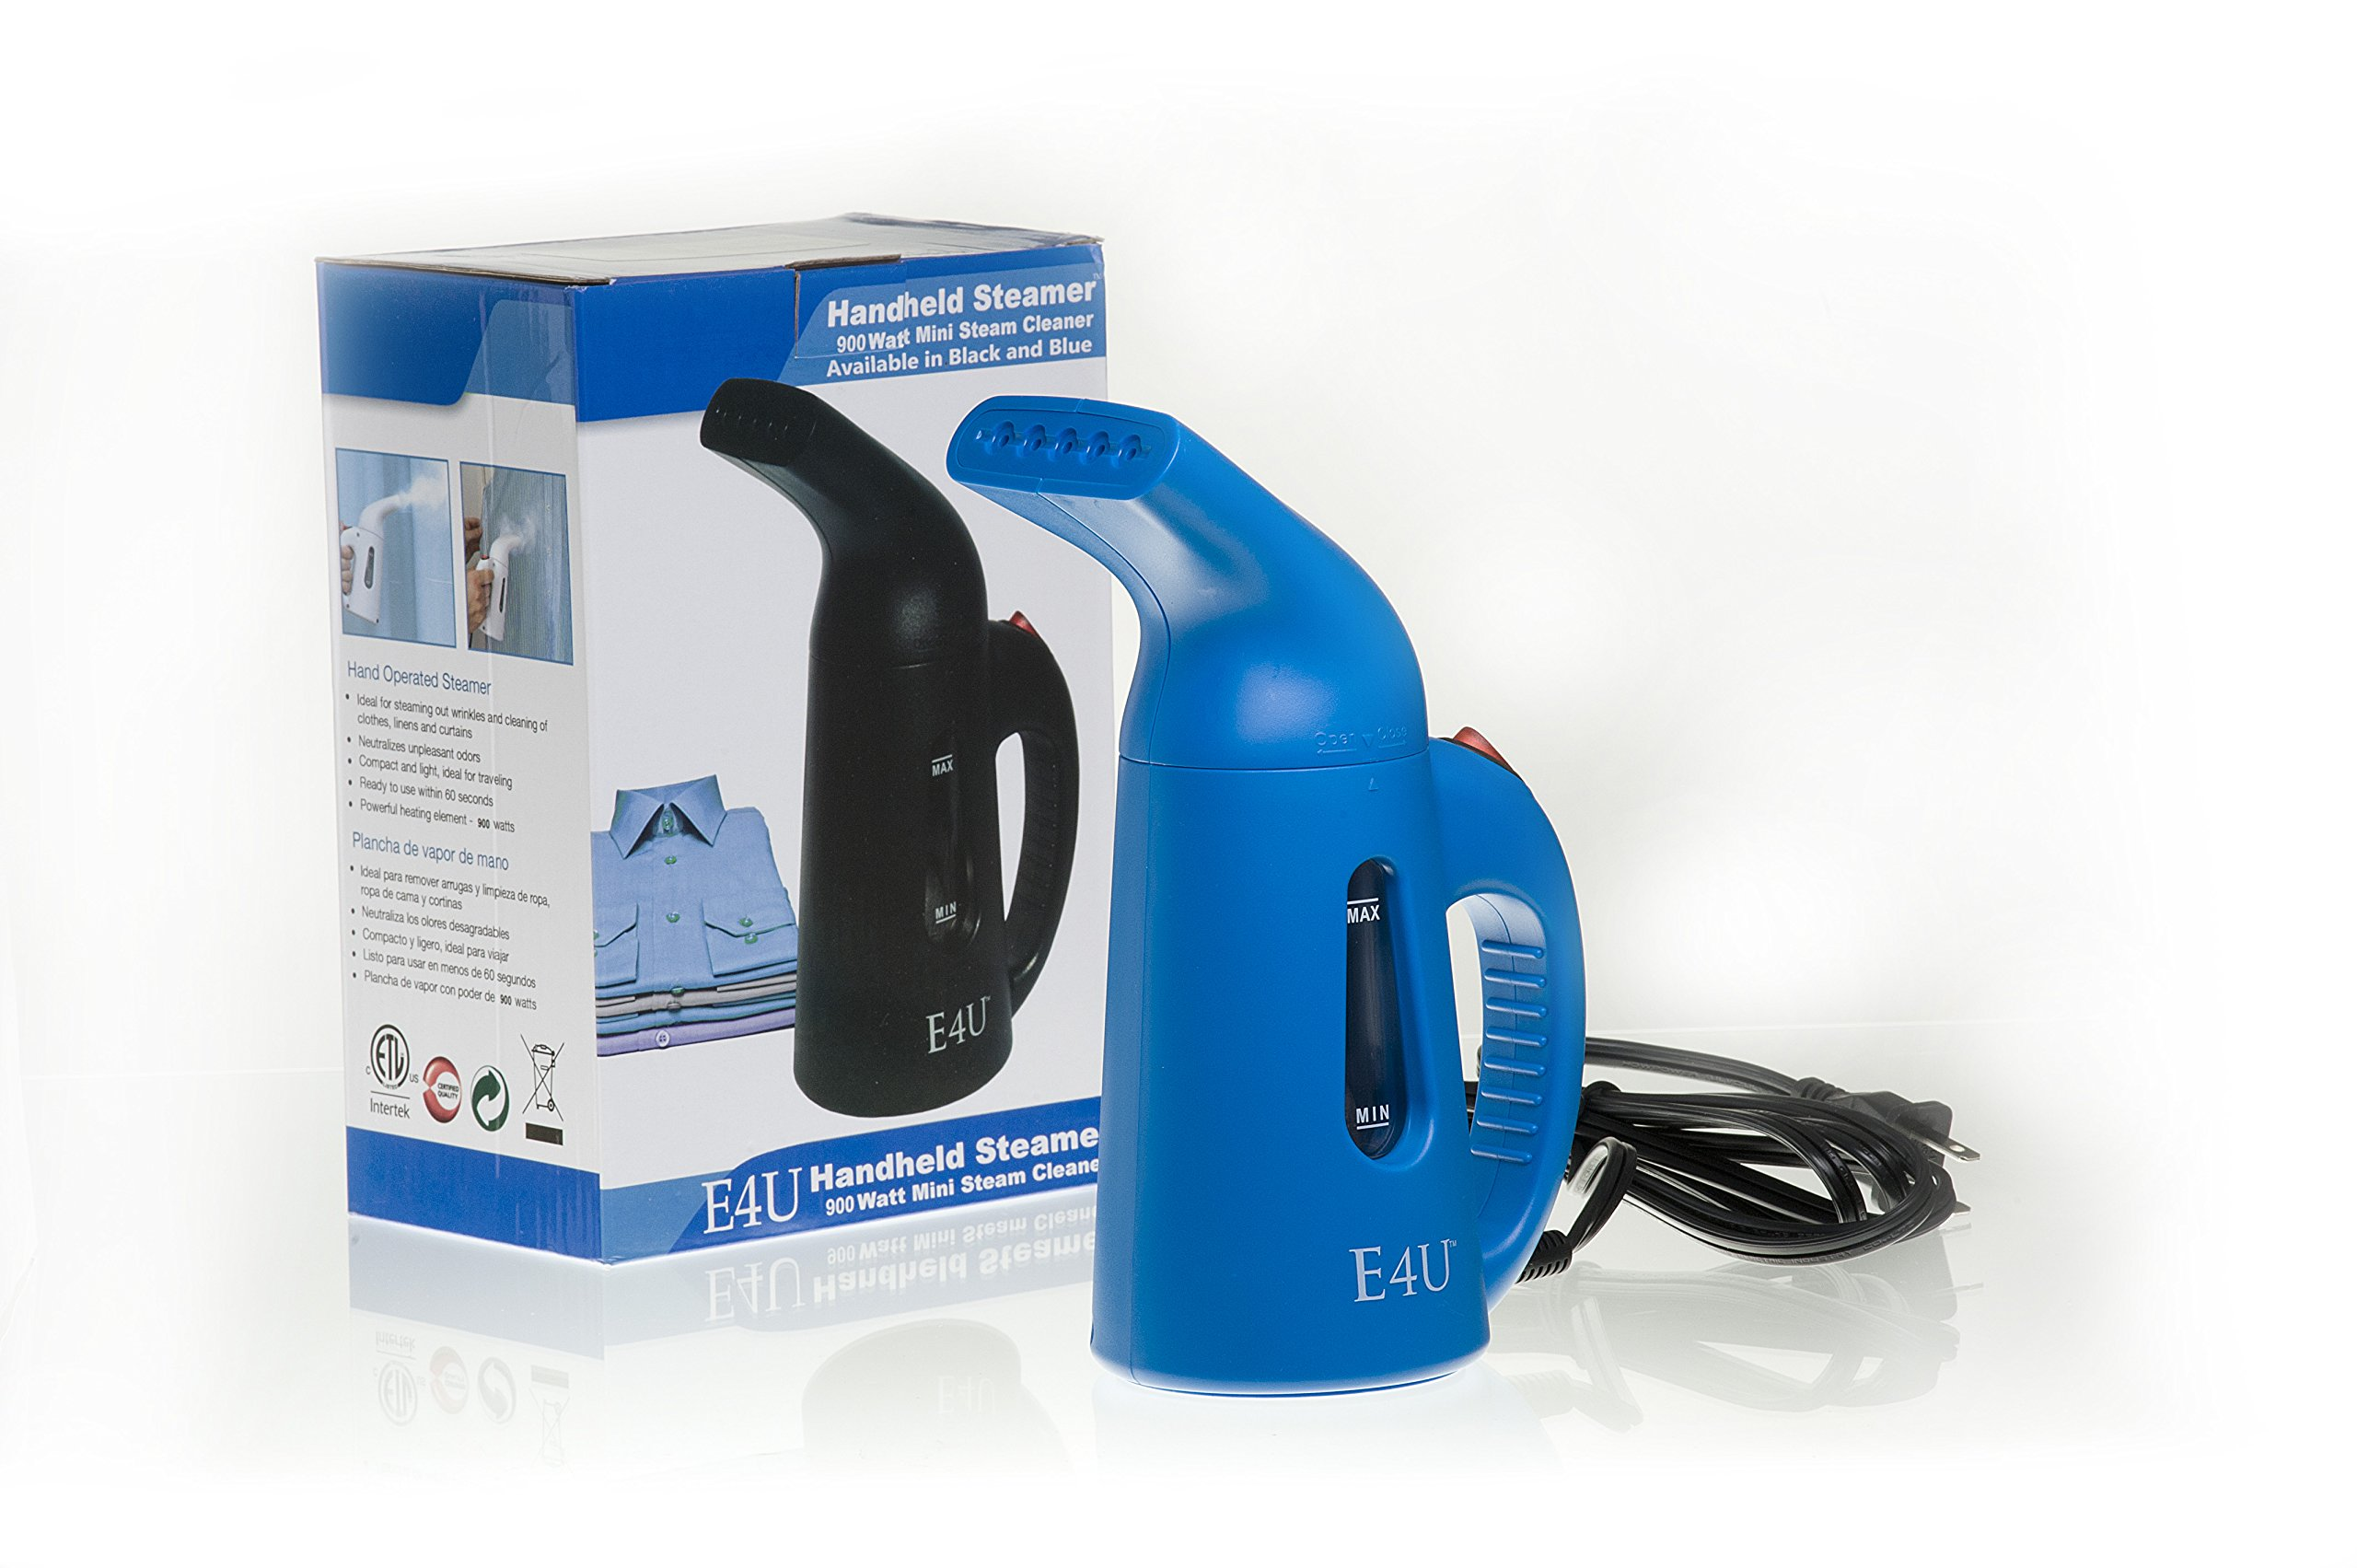 Best Quick Steam Clothing and Garment Steamer - Bonus Elite Travel Case - 900 Watt Travel Steamers for Clothes Fabrics